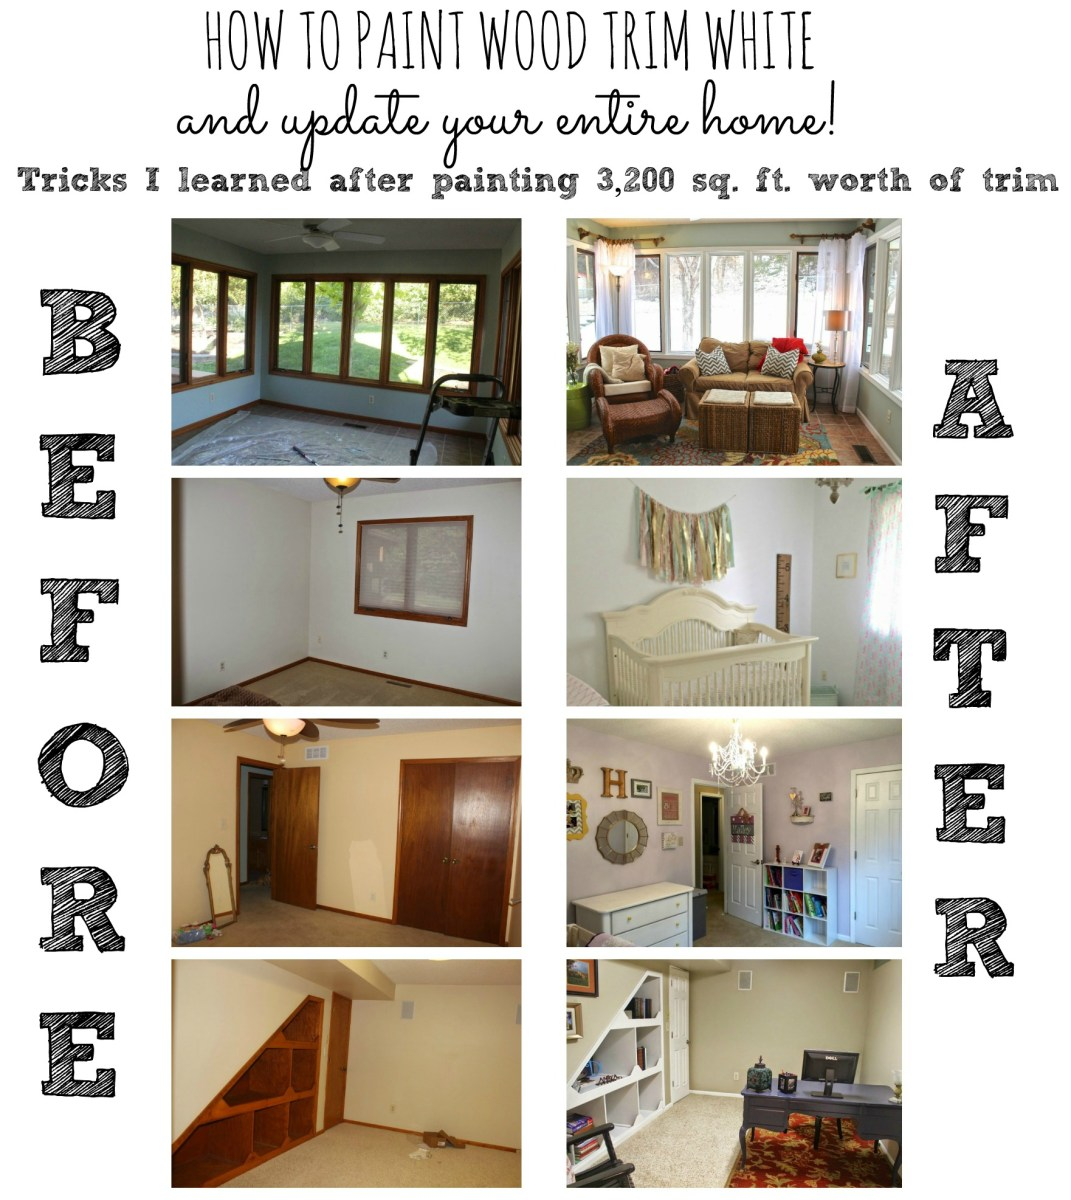 How to Paint Wooden Trim